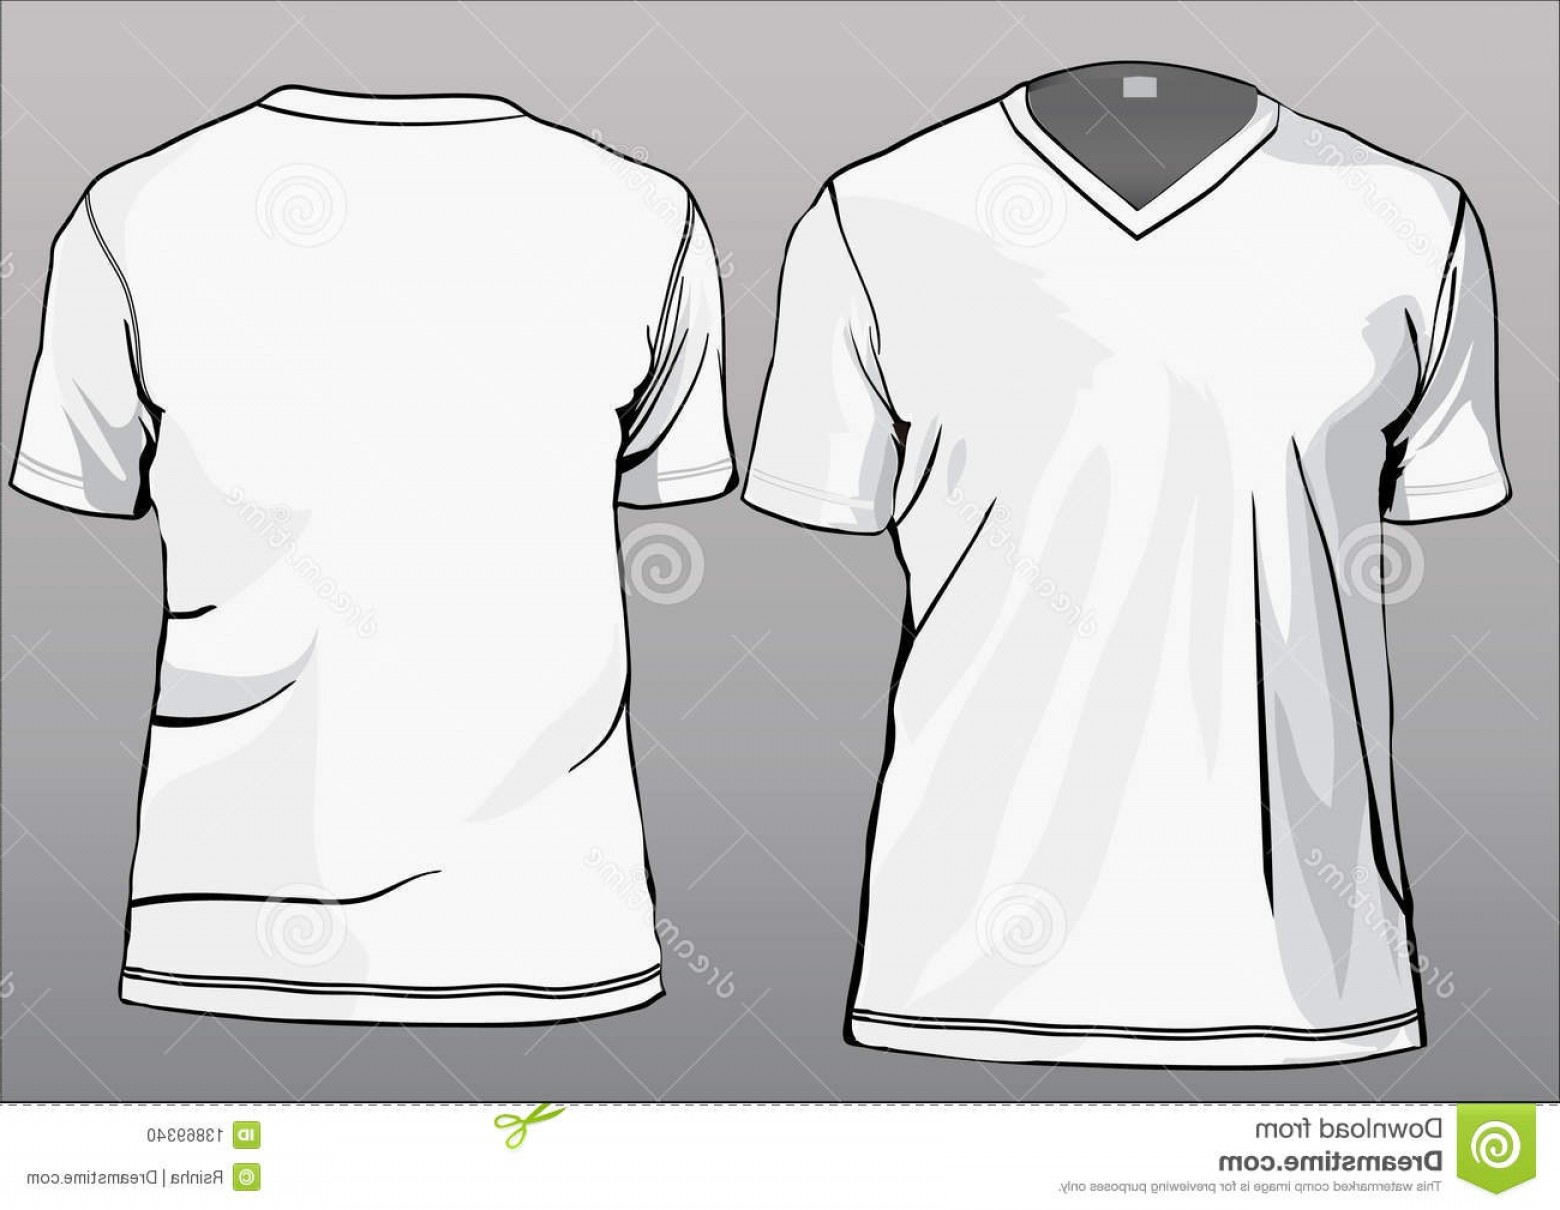 V-Neck Template Vector: Stock Photo Tshirt Template V Neck Image